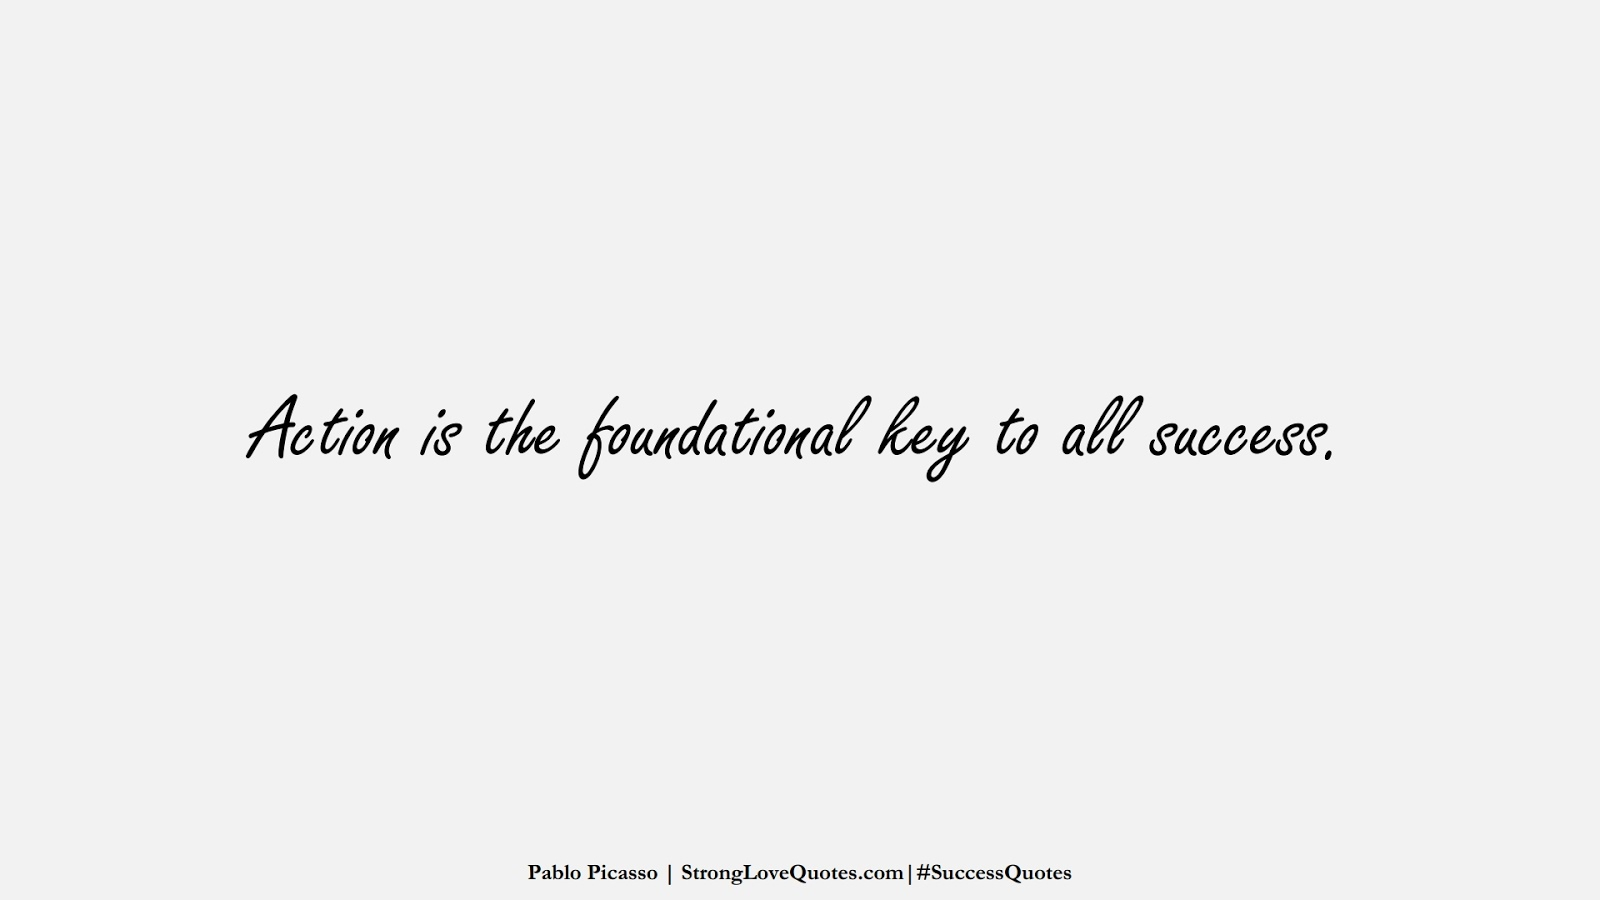 Action is the foundational key to all success. (Pablo Picasso);  #SuccessQuotes